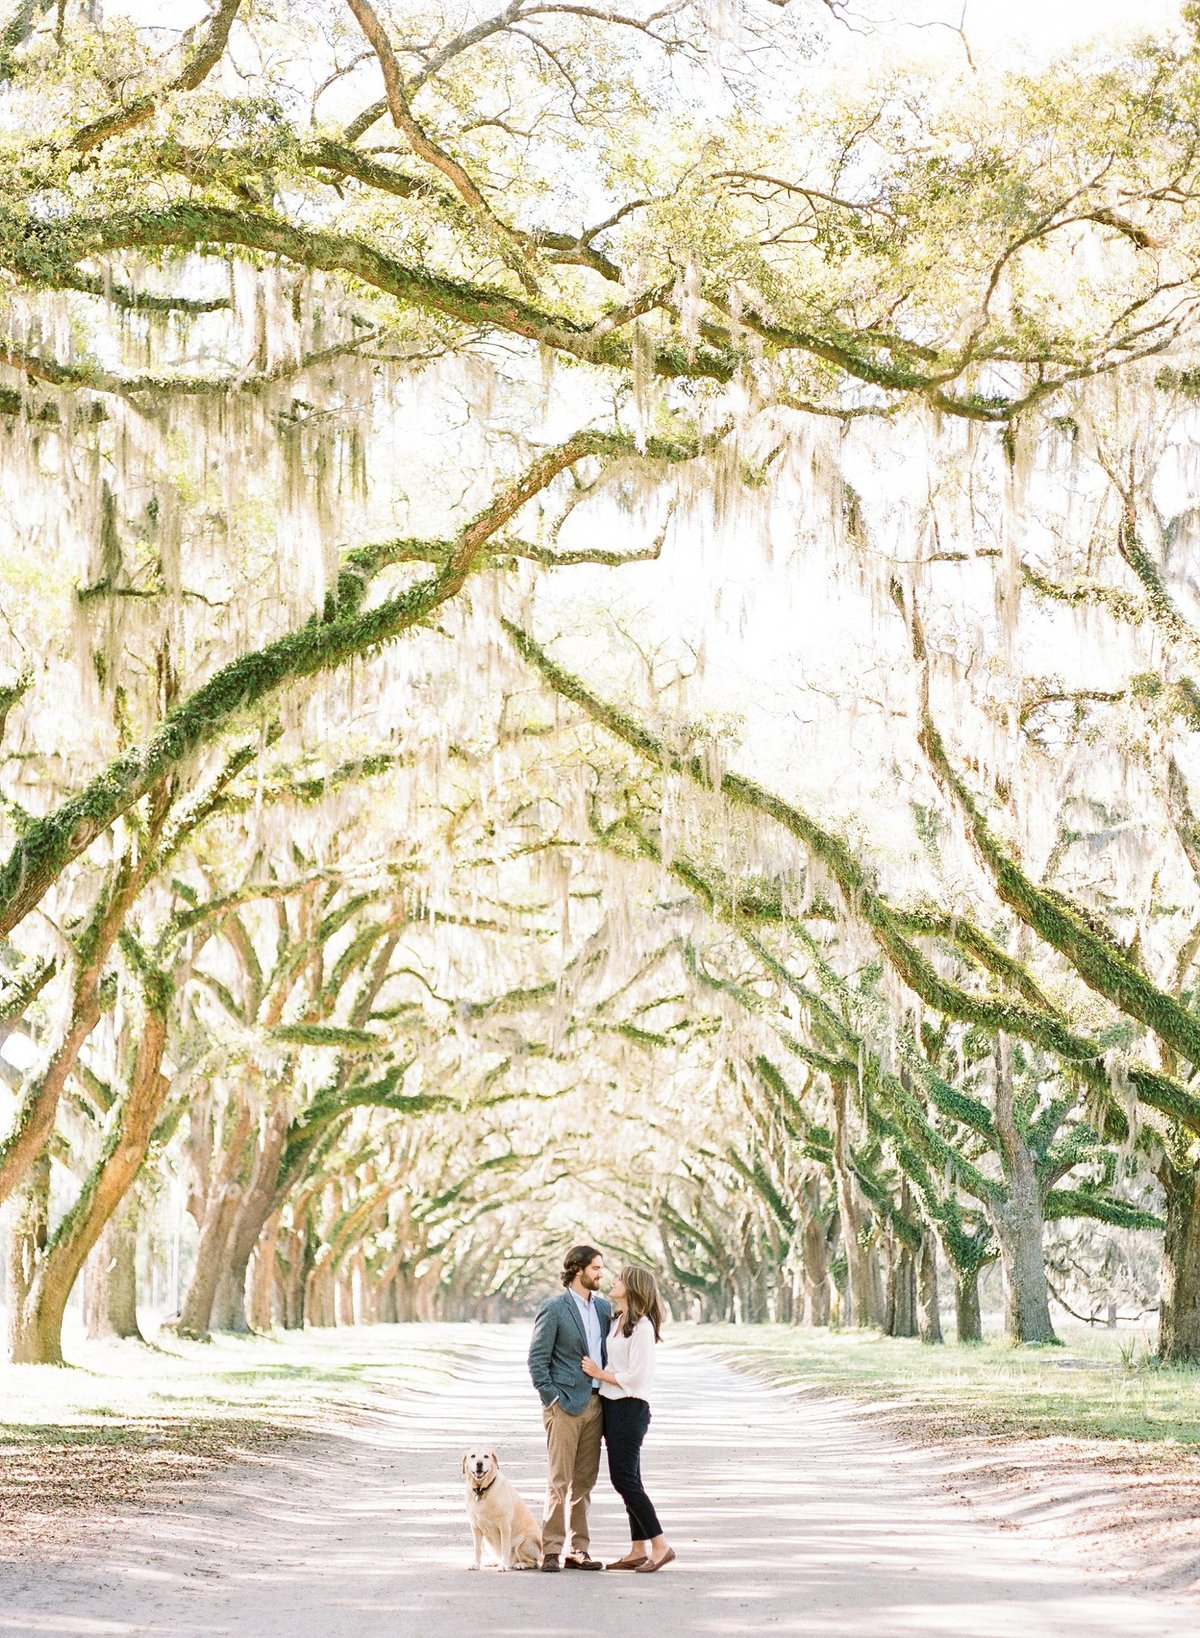 Savannah engagement, Savannah Wedding Photographer, Fine Art Film, Destination Wedding Photographers, Henry Photography_2895